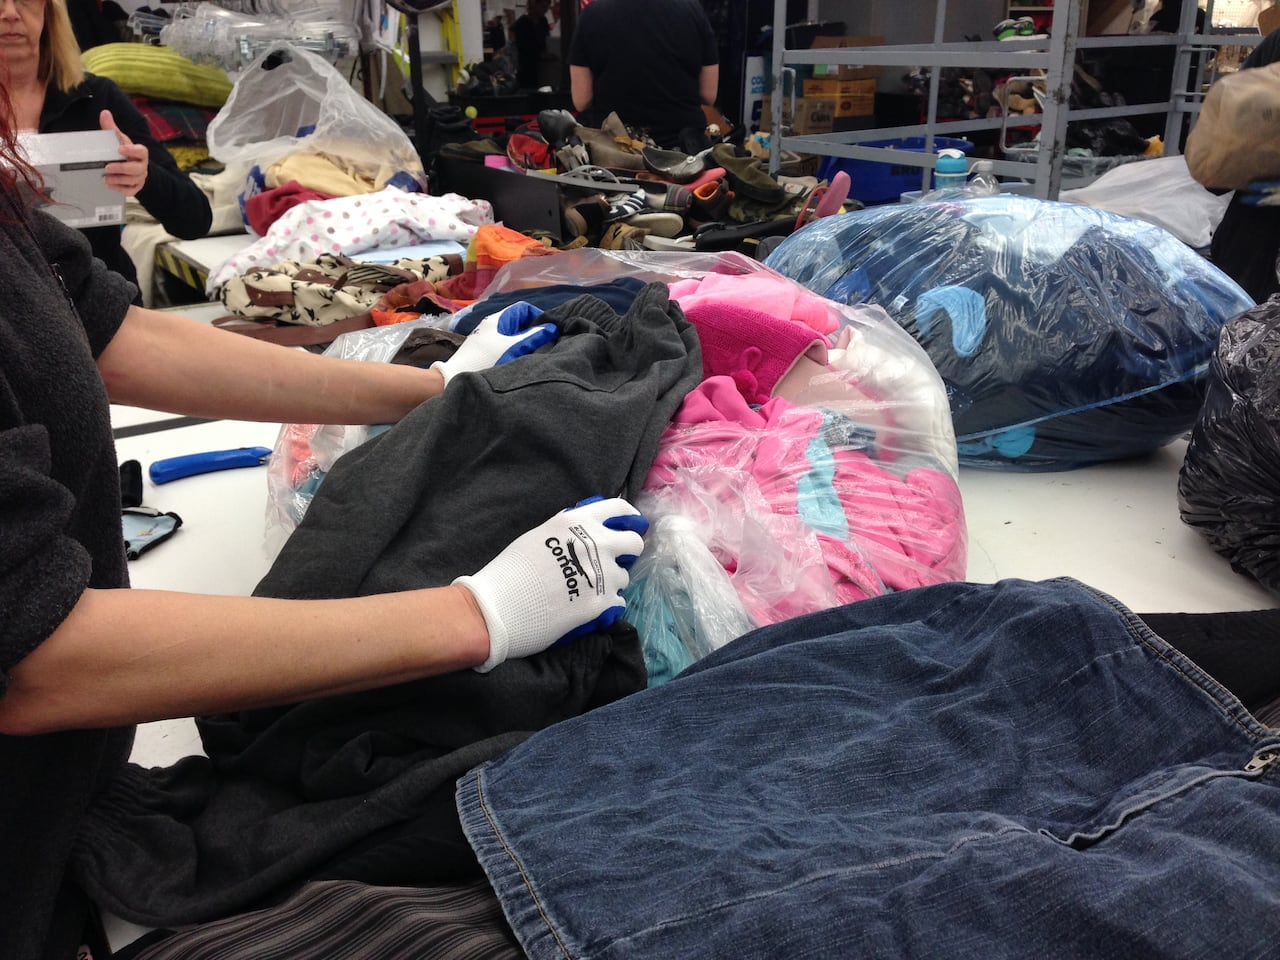 80e775ae1 Here's where your donated clothing really ends up | CBC News